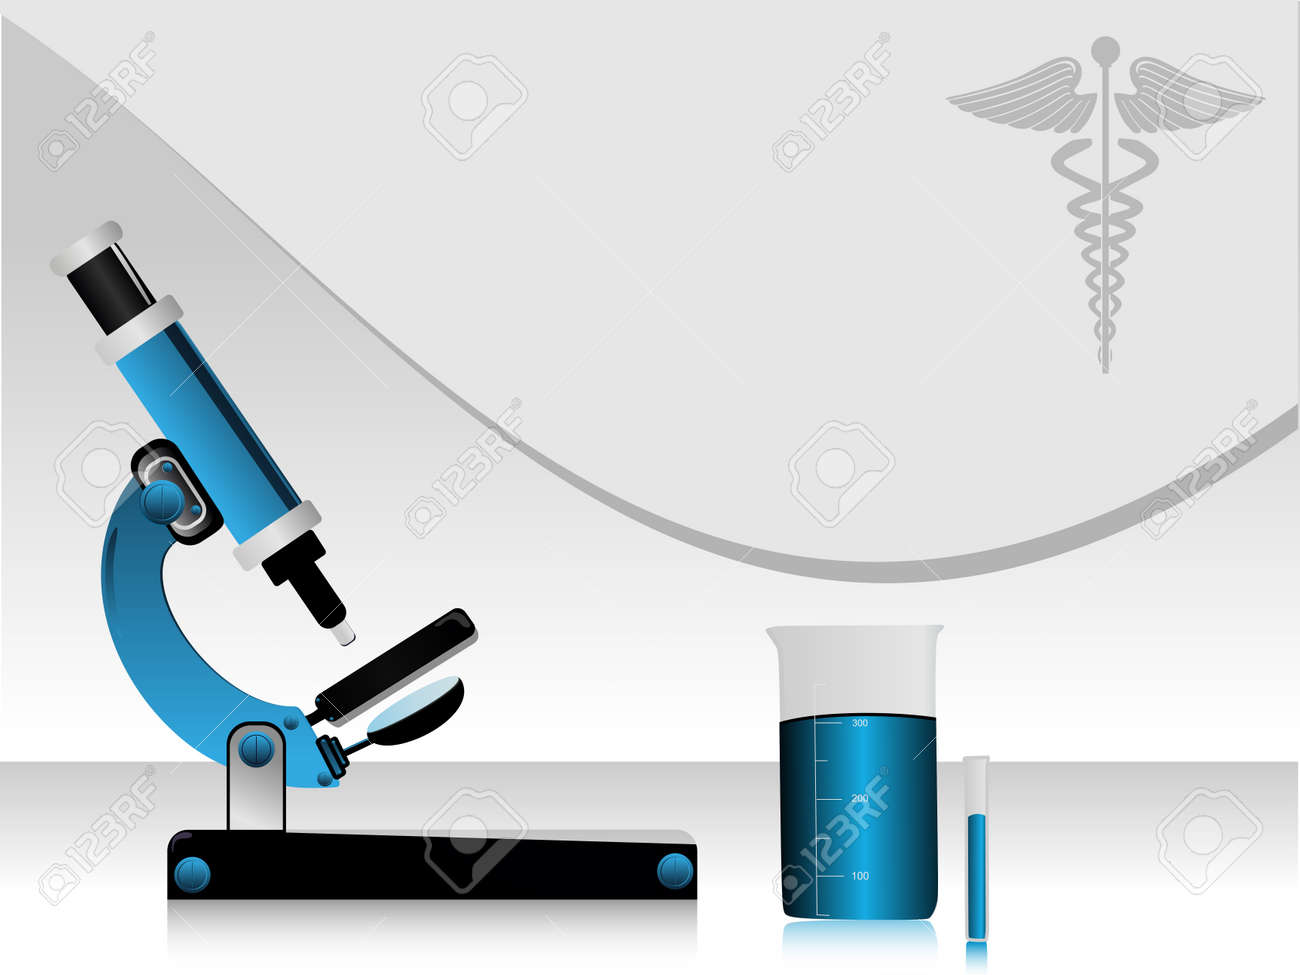 Vector illustration of a medical high tech science abstract background, with microscope, beker, medical symbol Stock Vector - 12487780